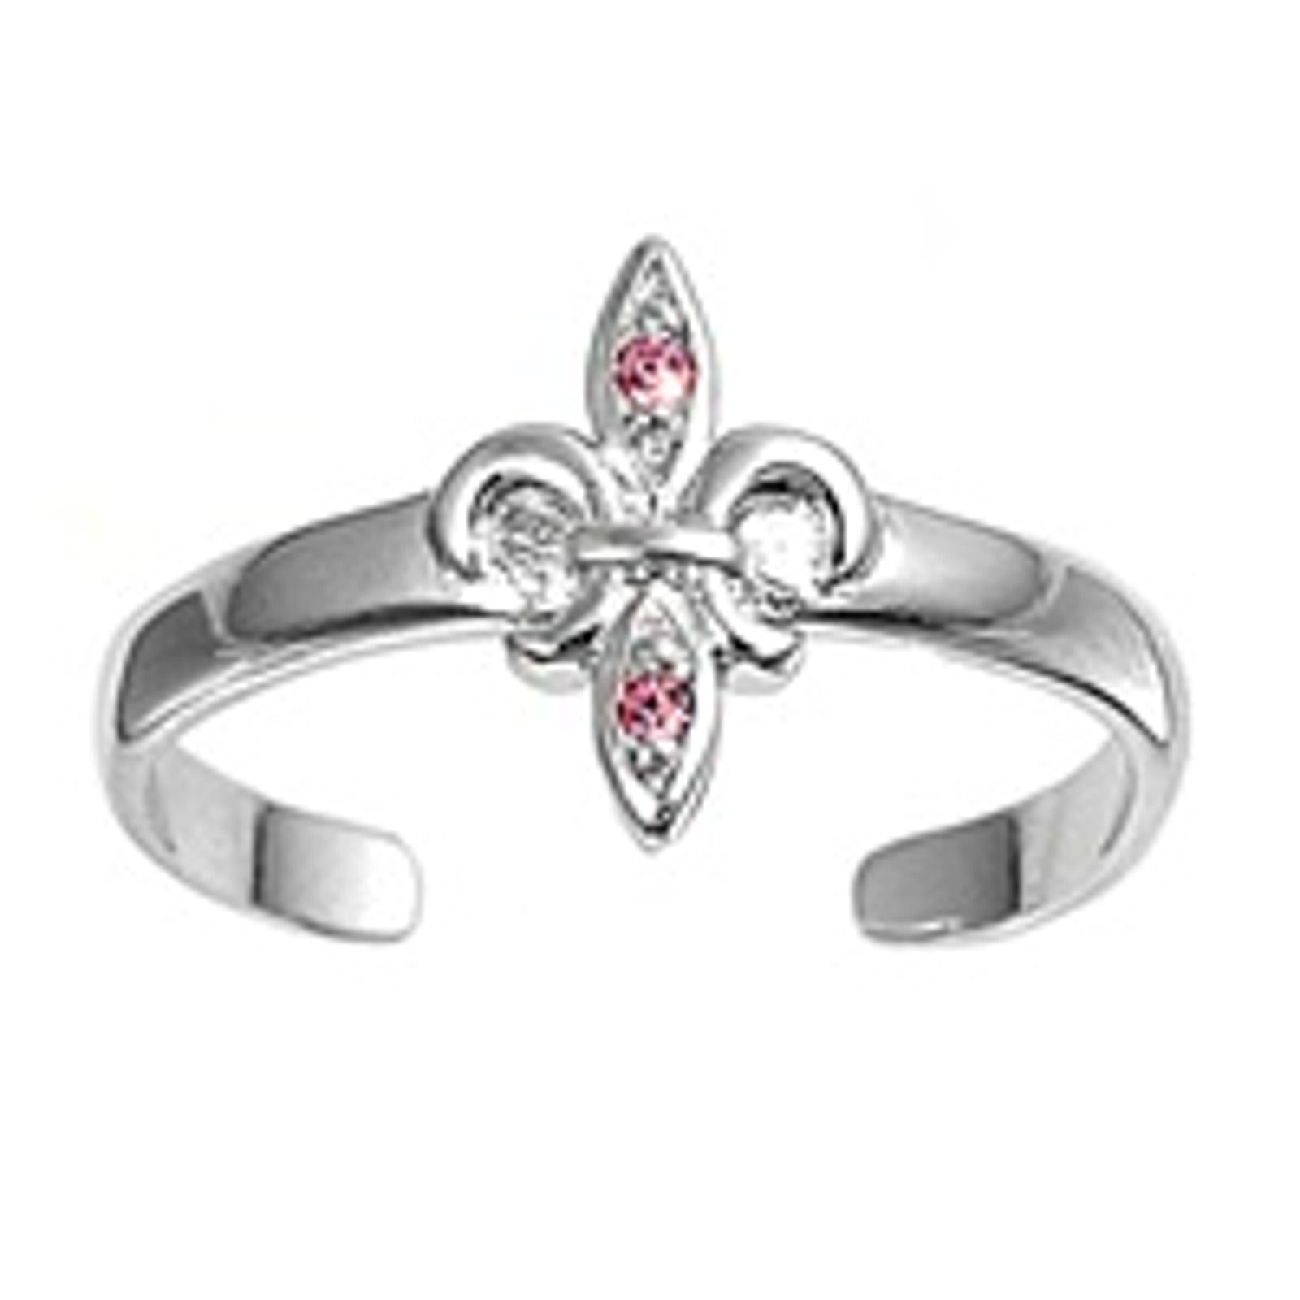 Fleur De Lis Light Pink Cubic Zirconia Adjustable Toe Ring